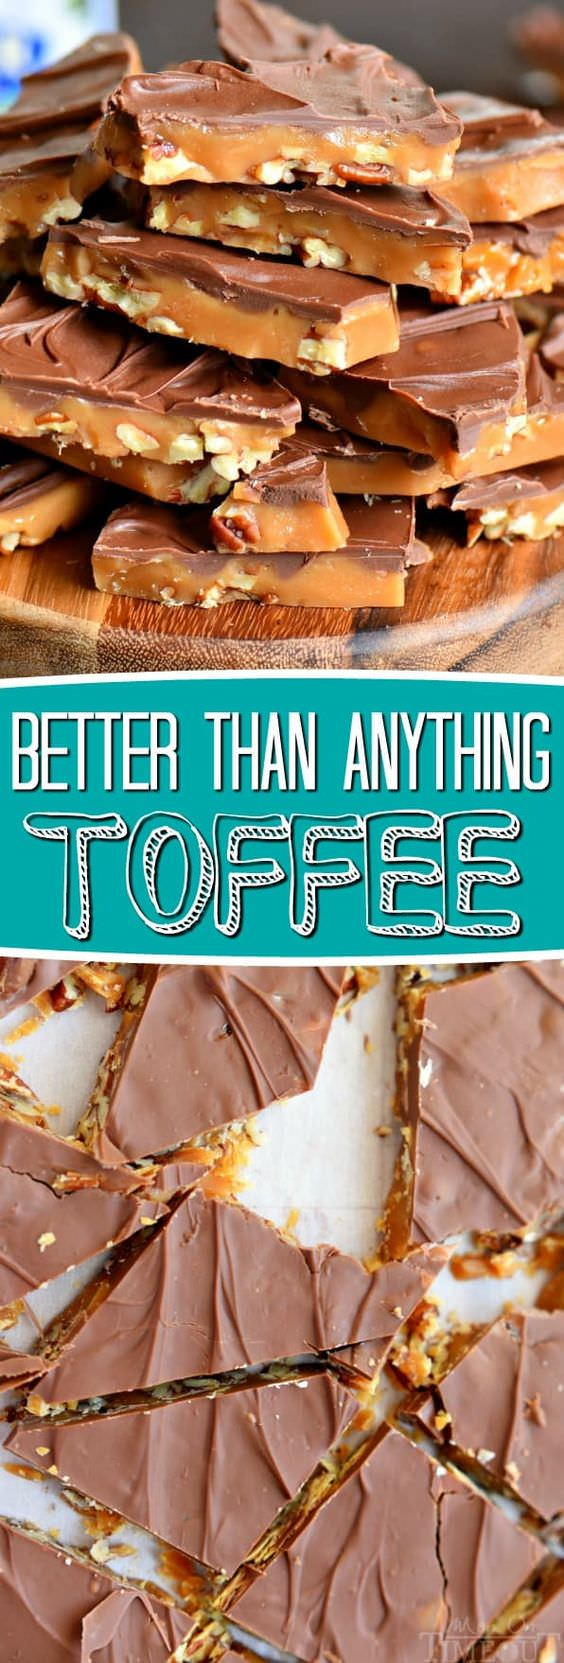 The best toffee recipe EVER! Sweet milk chocolate, crunchy pecans, and rich, buttery toffee - what's not to love? Makes a great gift!